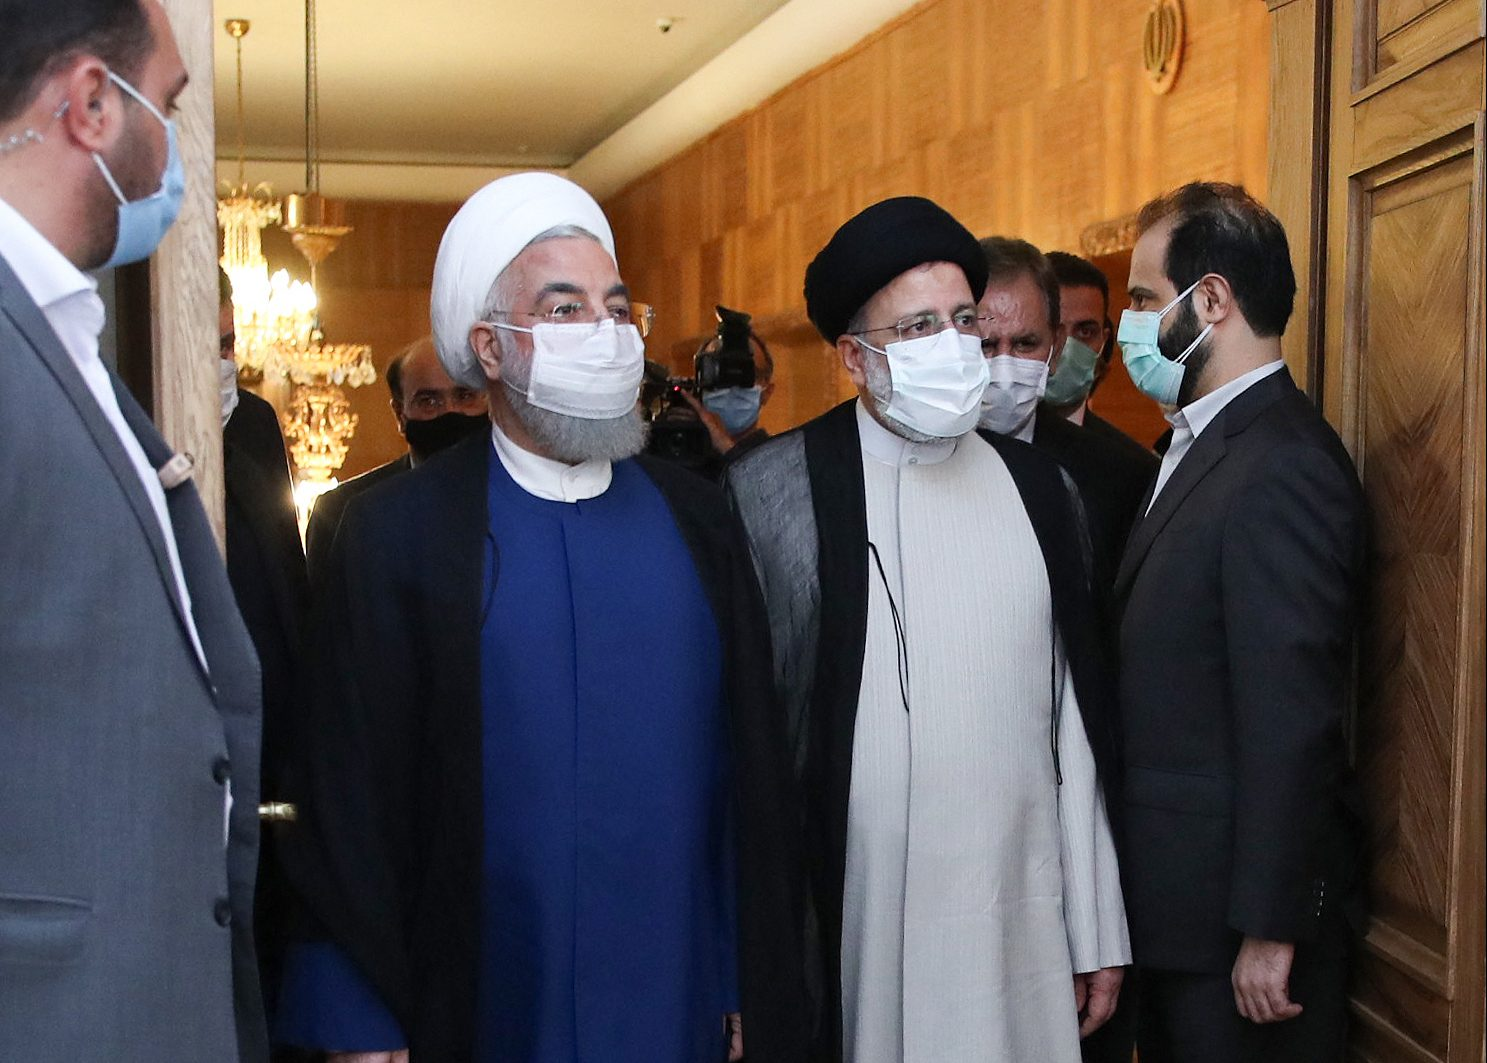 Outgoing president Hassan Rouhani (L) and Iran's newly inaugurated President Ebrahim Raisi arriving for the handover ceremony in Tehran, August 3, 2021. -Photo: AFP / Iranian Presidency